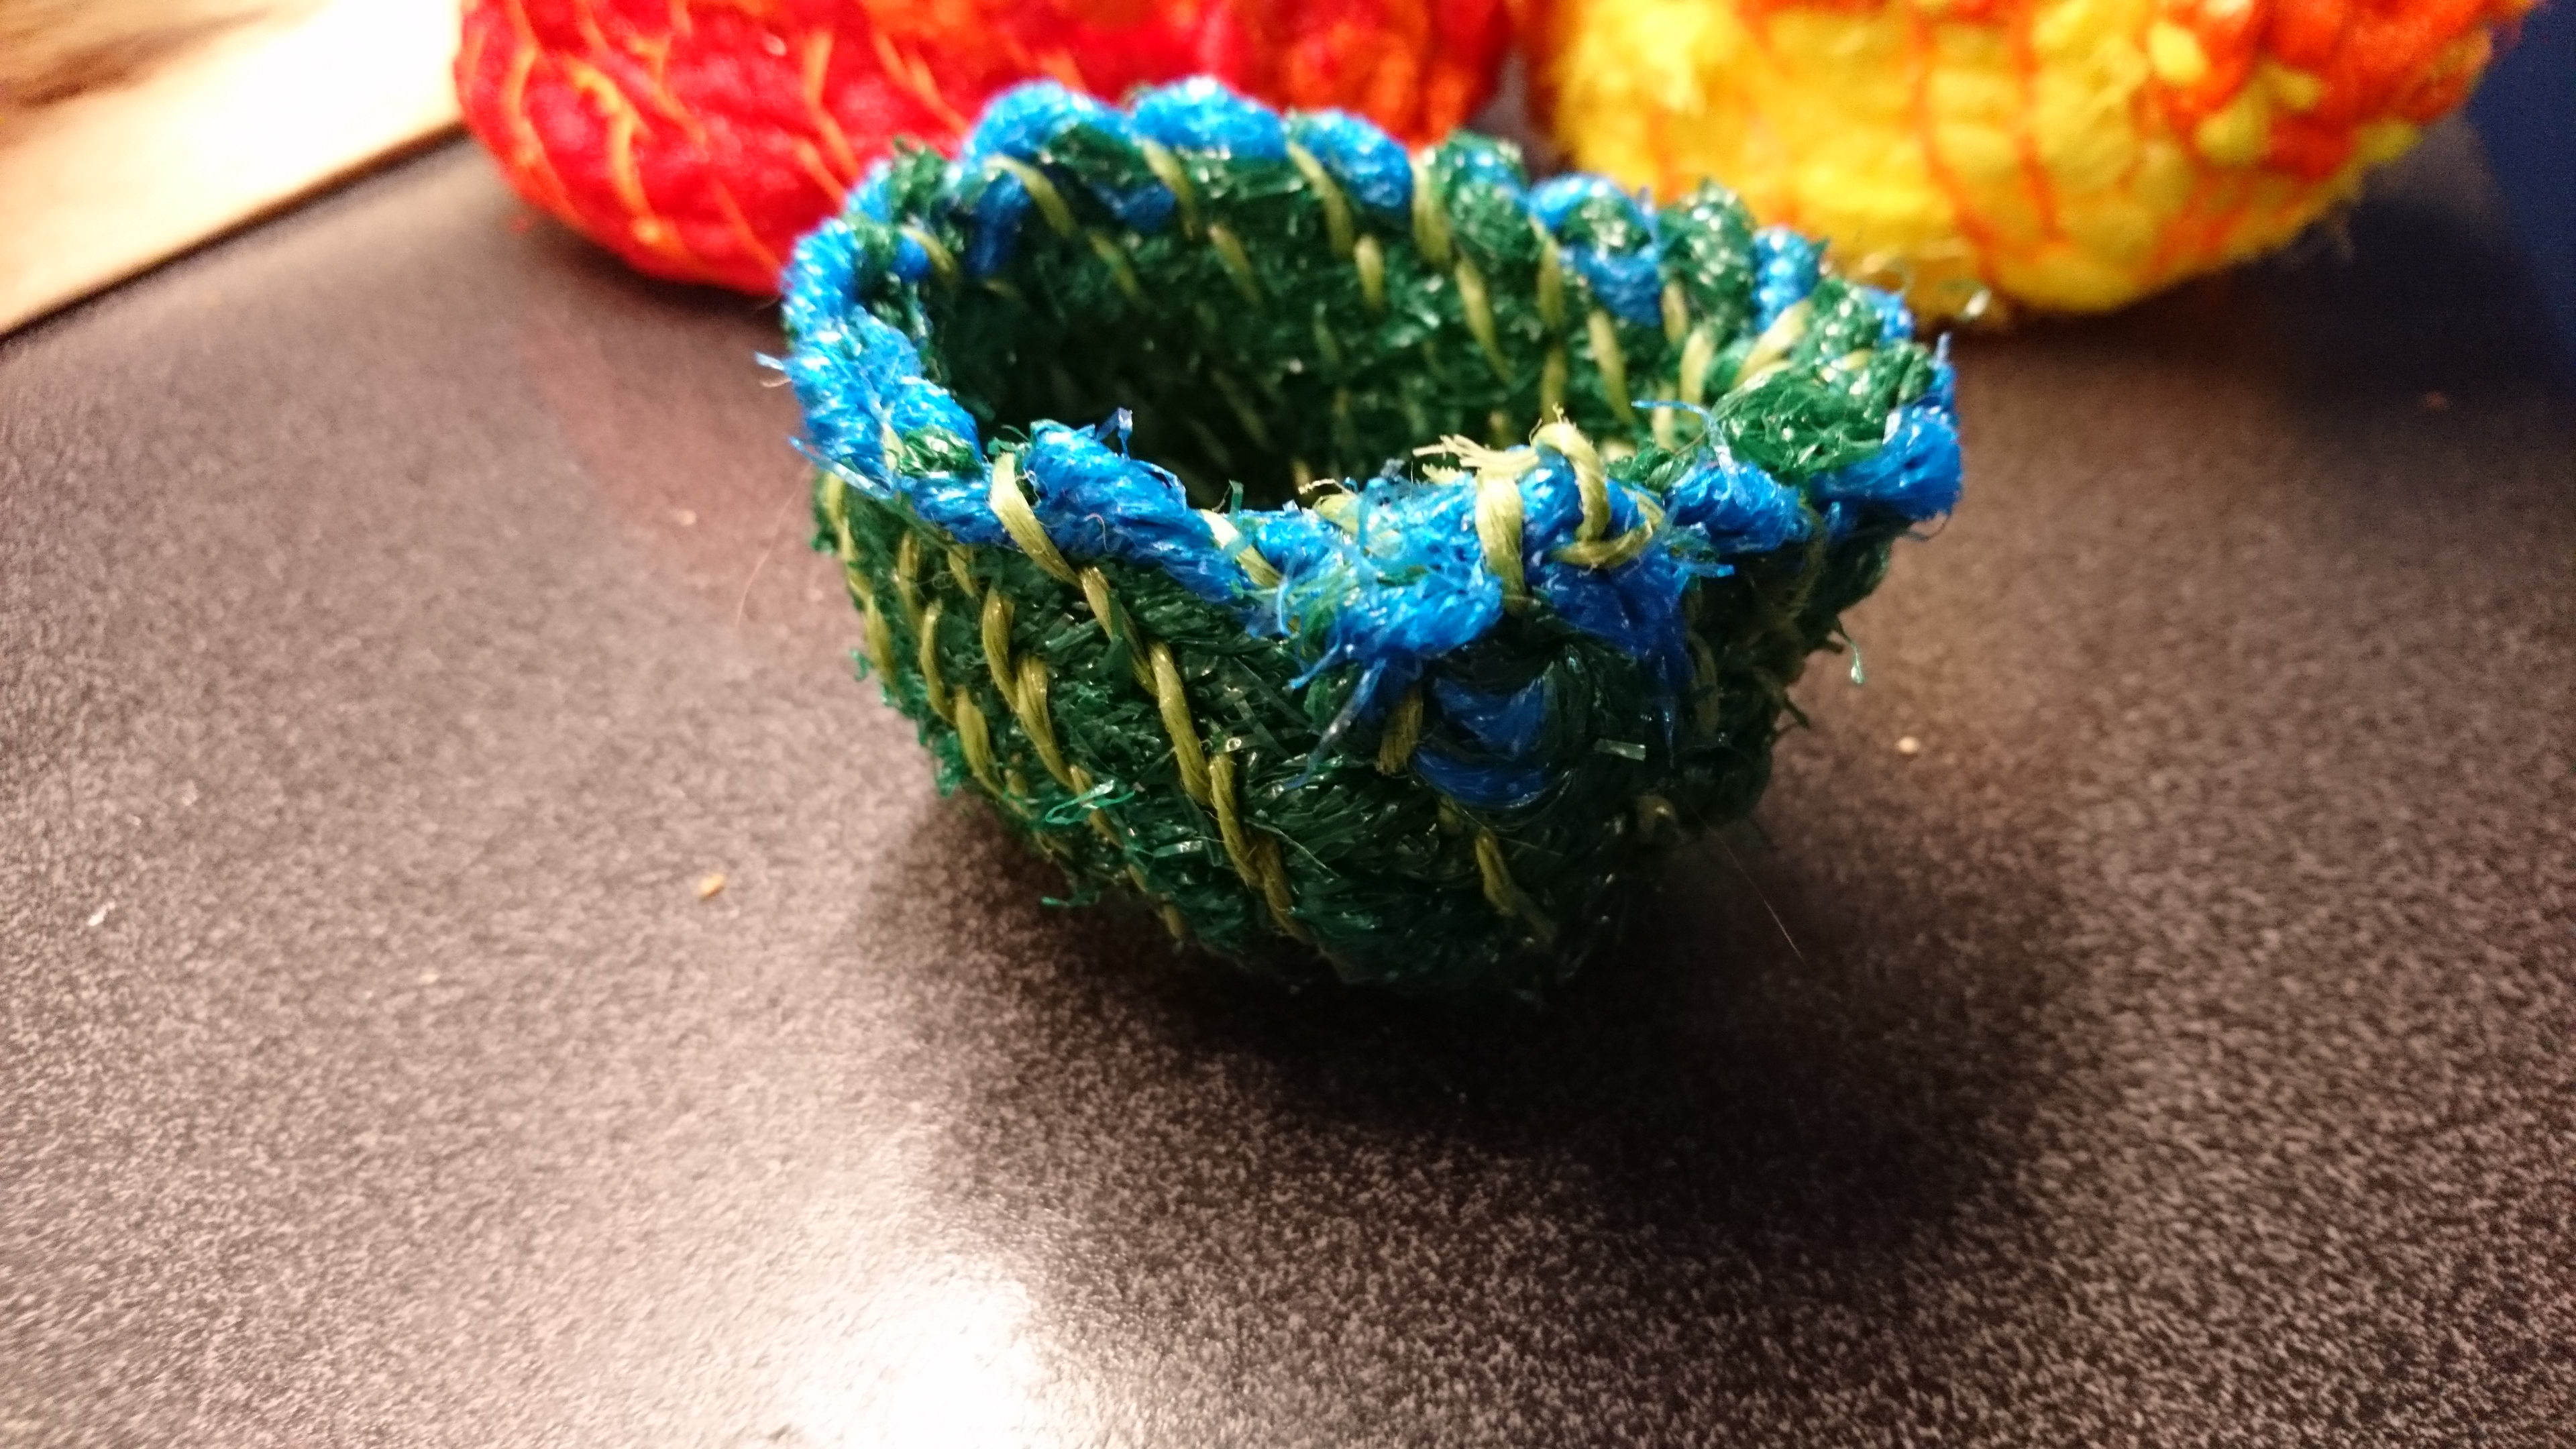 Made with recycled mnetting from fruit and veg.